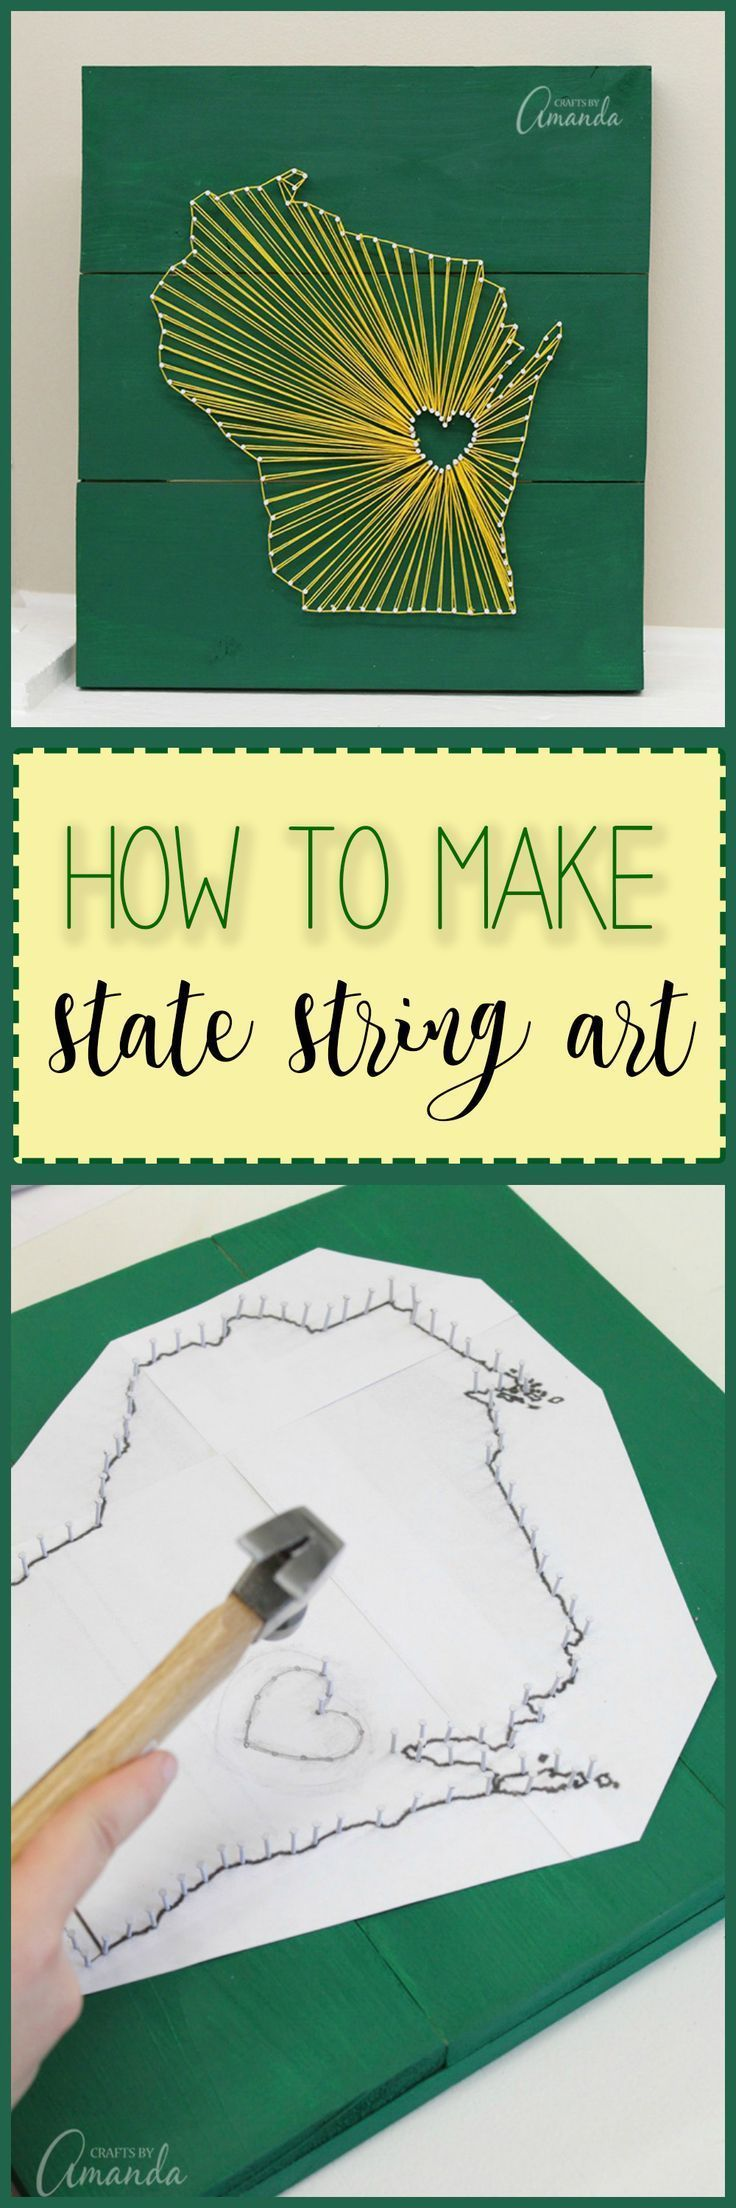 373 best DIY ○ String Art images on Pinterest | Diy string art ...